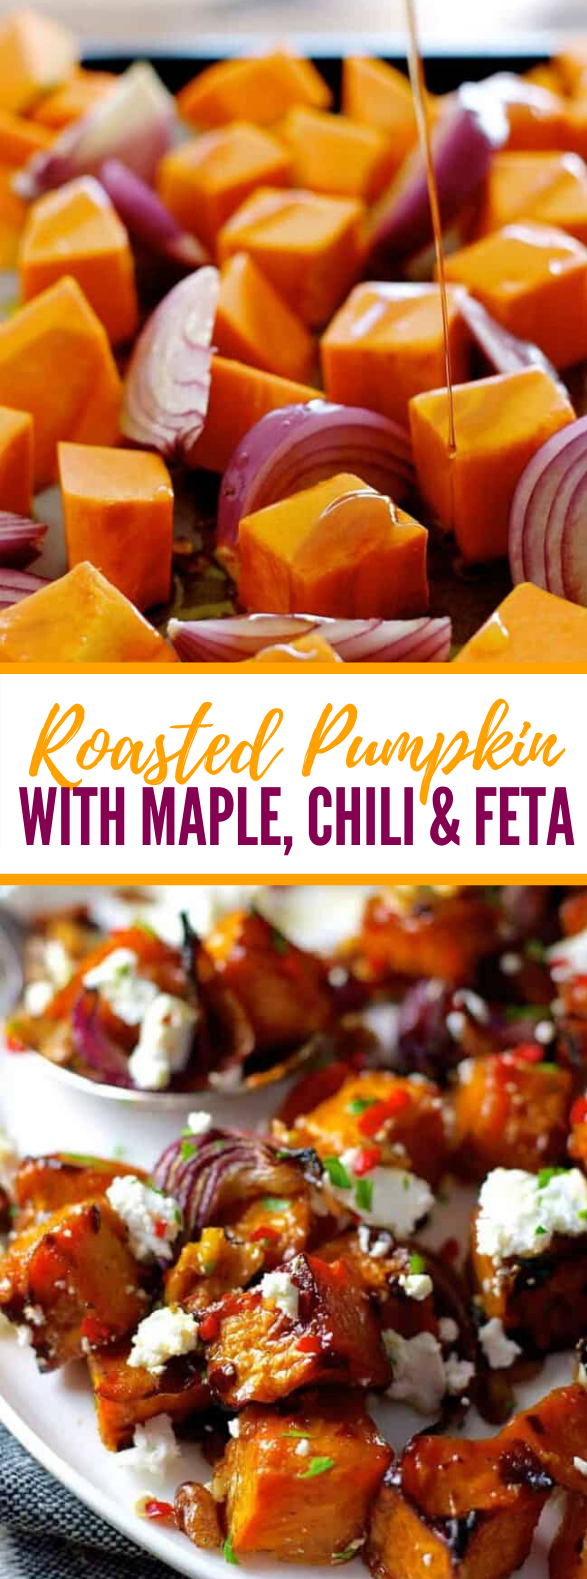 Roasted Pumpkin with Maple, Chili and Feta #vegetables #veggies